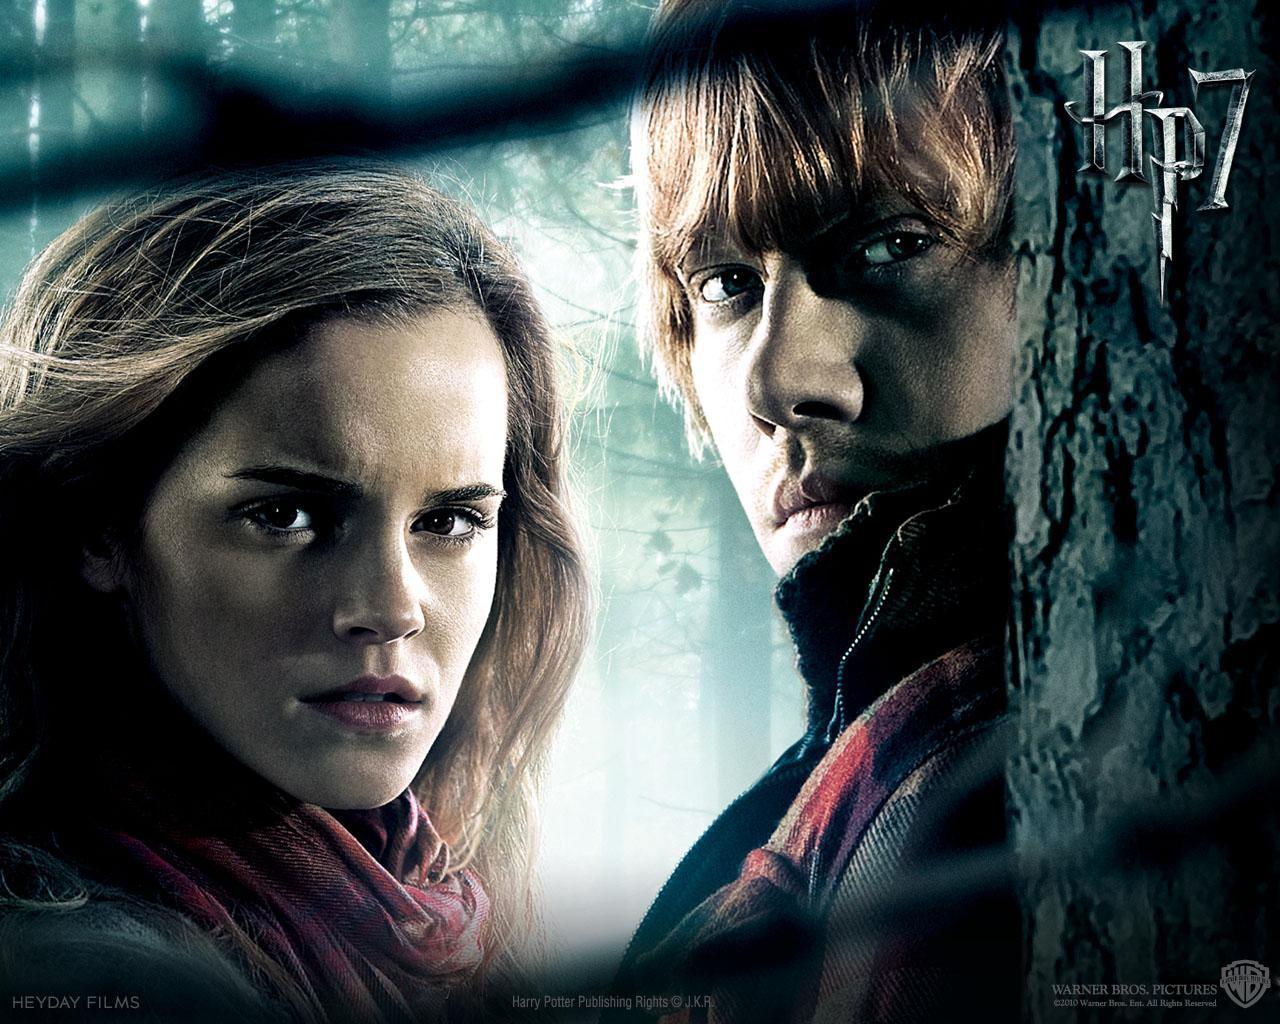 Harry Potter Ron Weasley and Hermione Granger